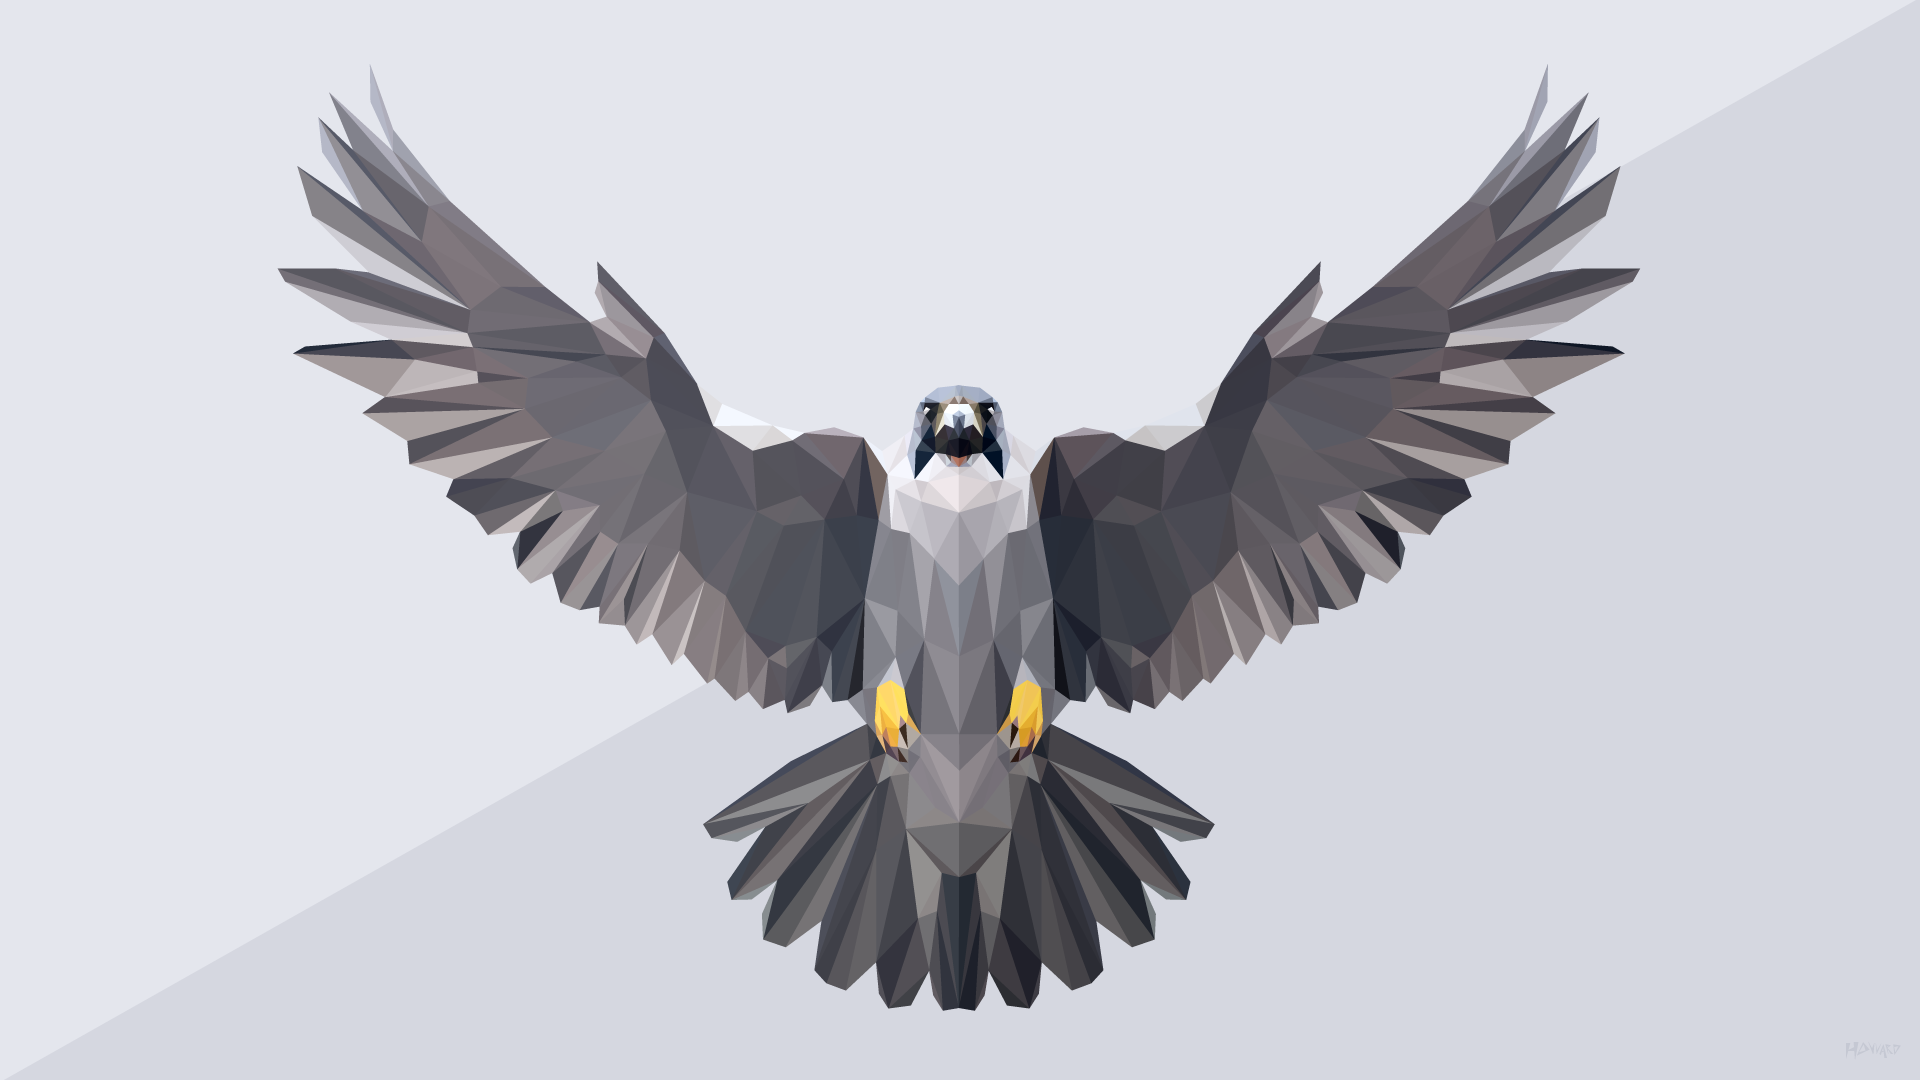 Low Poly Falcon 1920x1080 R Wallpapers Wallpaper R Wallpaper Wallpaper Backgrounds